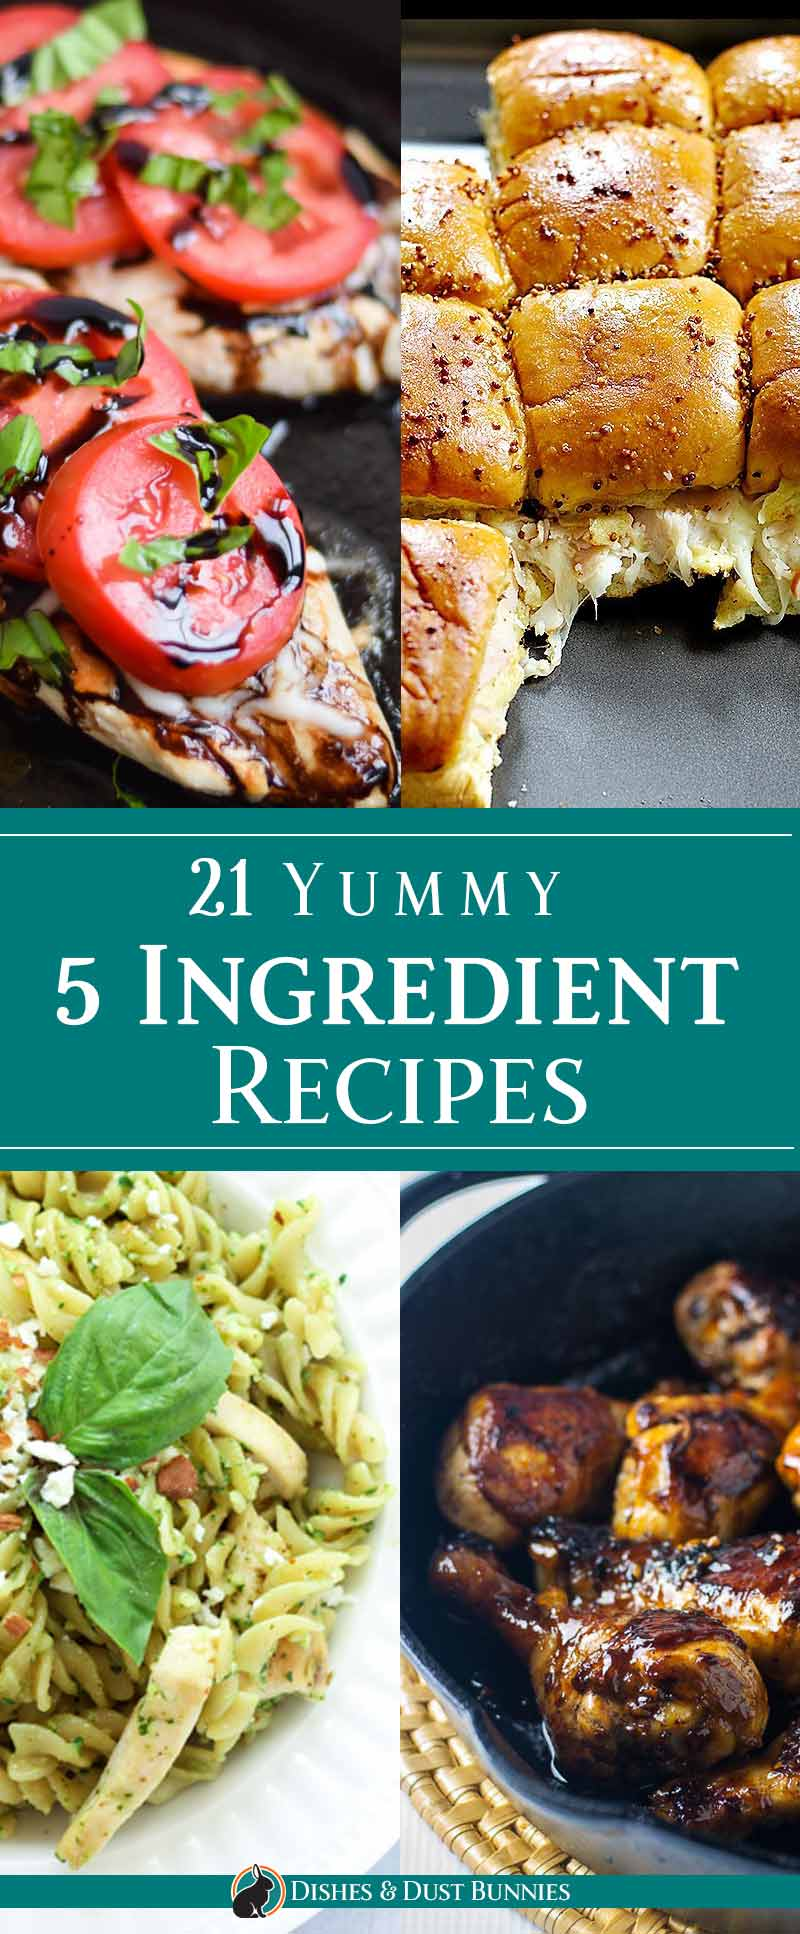 21 Yummy 5 Ingredient Recipes - dishesanddustbunnies.com